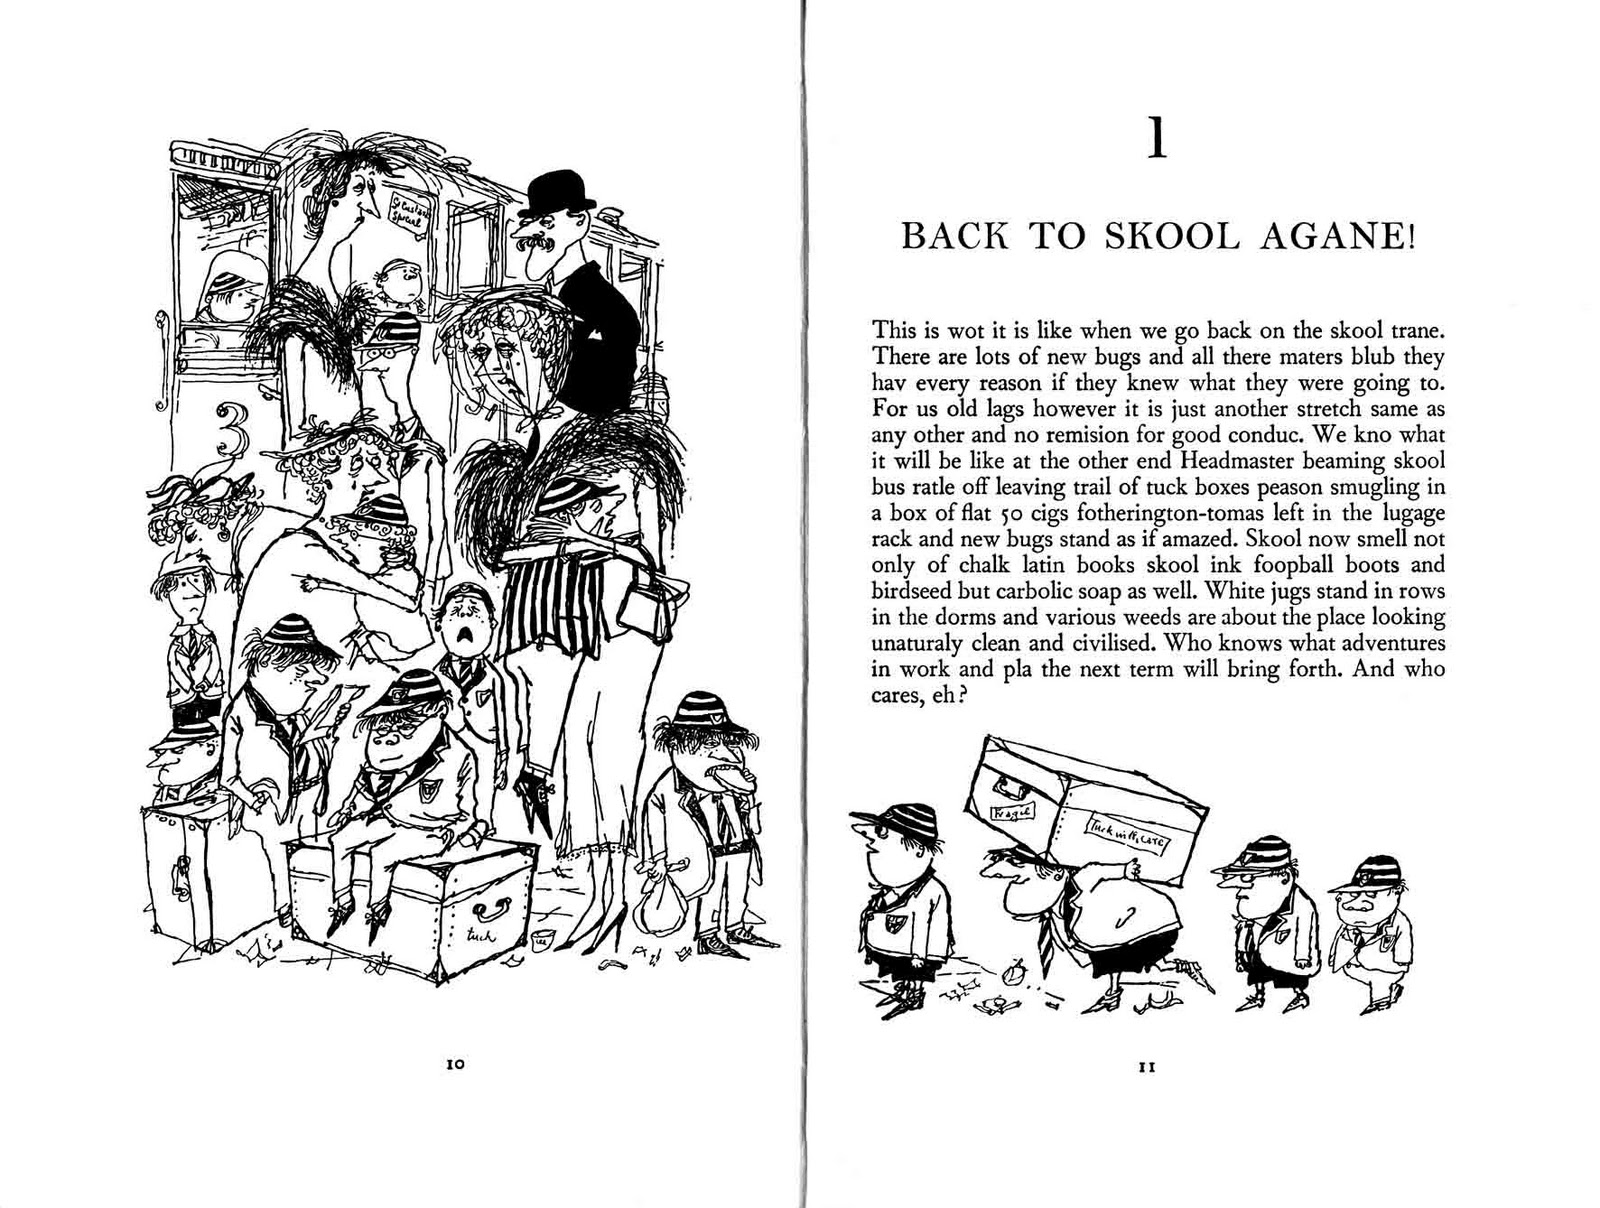 ECC Cartoonbooks Club: Ronald Searle the Great Part 2